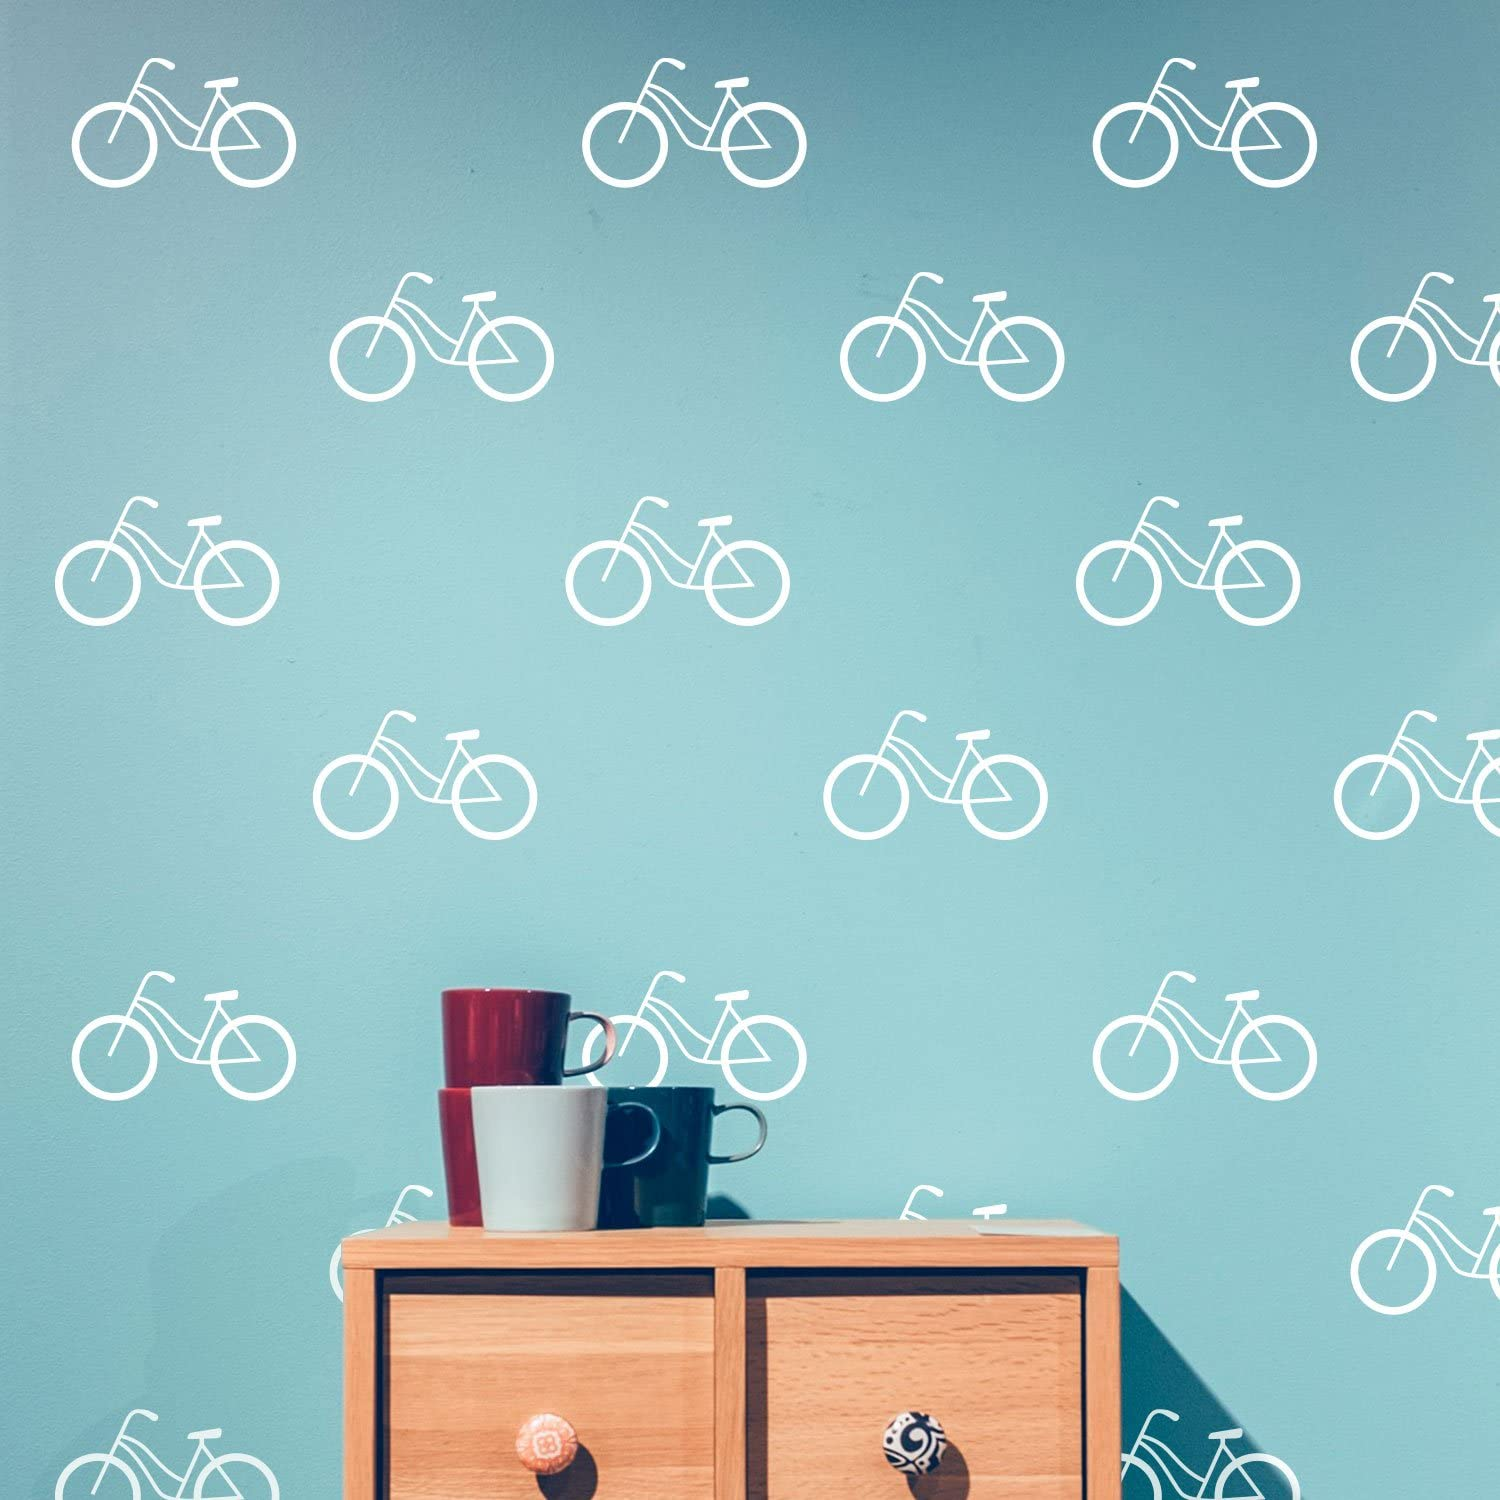 Set of 20 Vinyl Wall Art Decal - Bicycle Patterns - 3